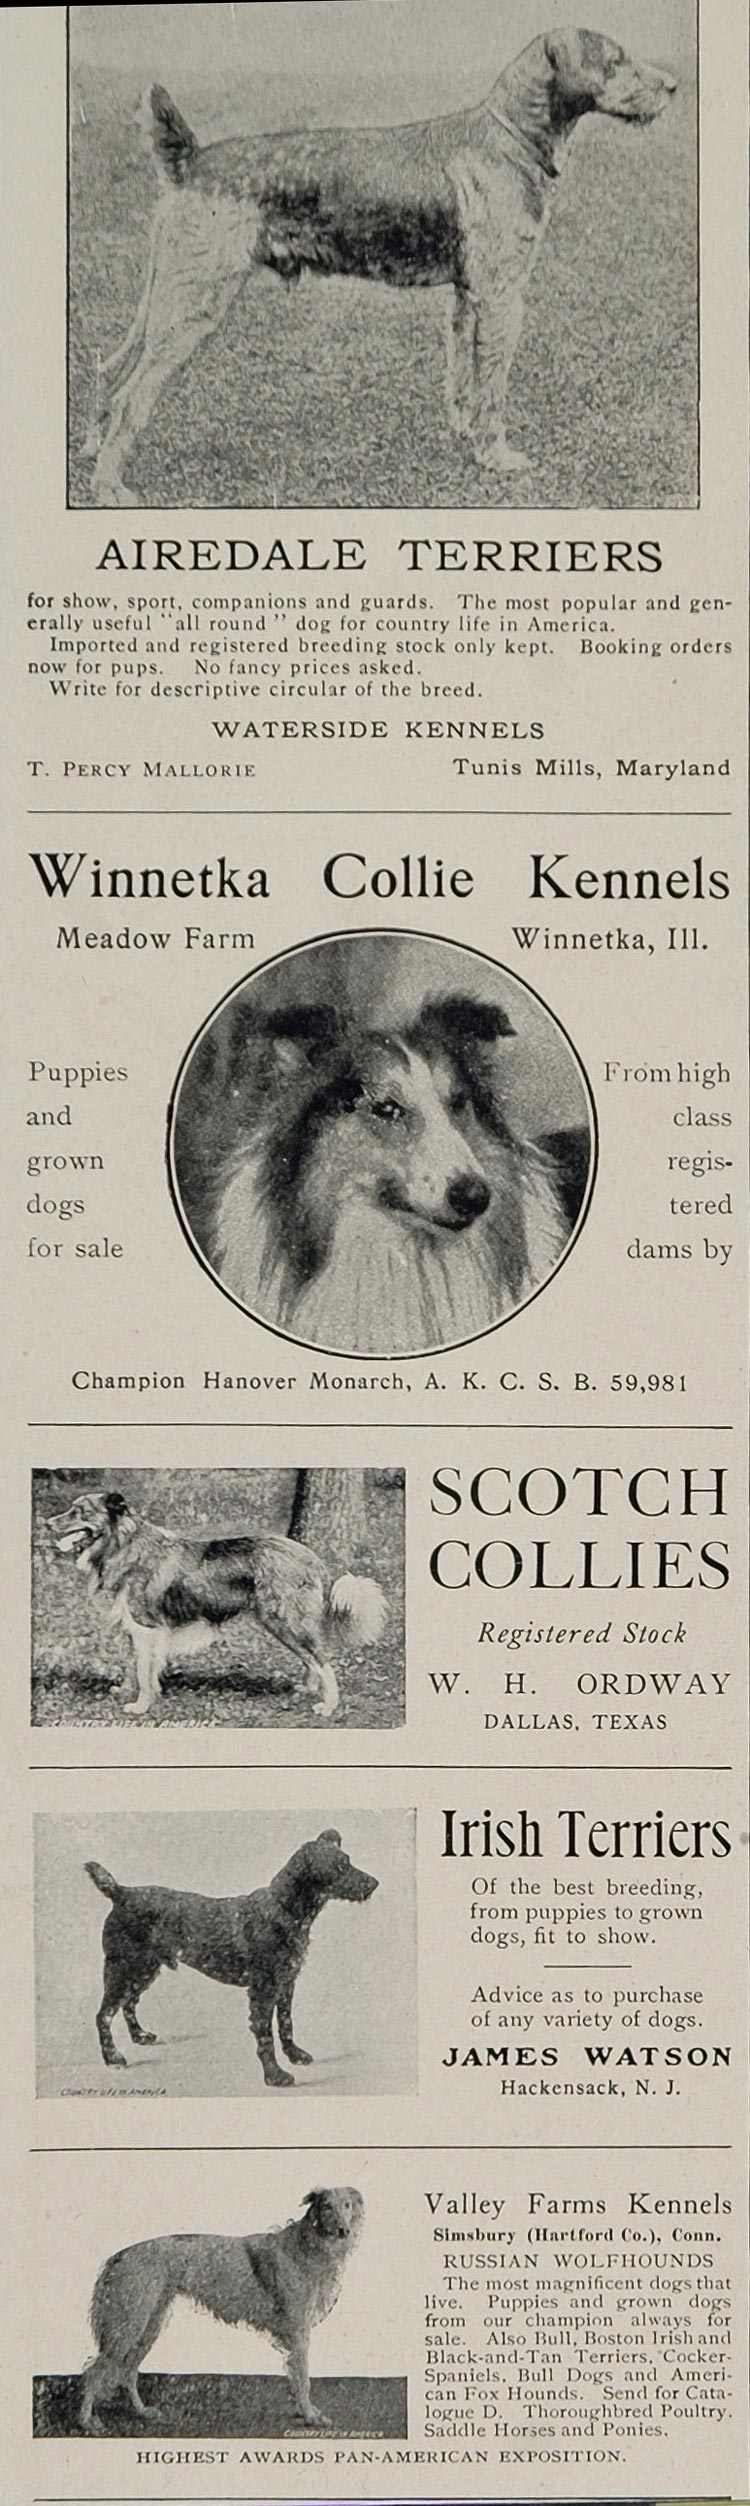 1902 Ad Airedale Terrier Scotch Collie Borzoi Breeders - ORIGINAL CL1